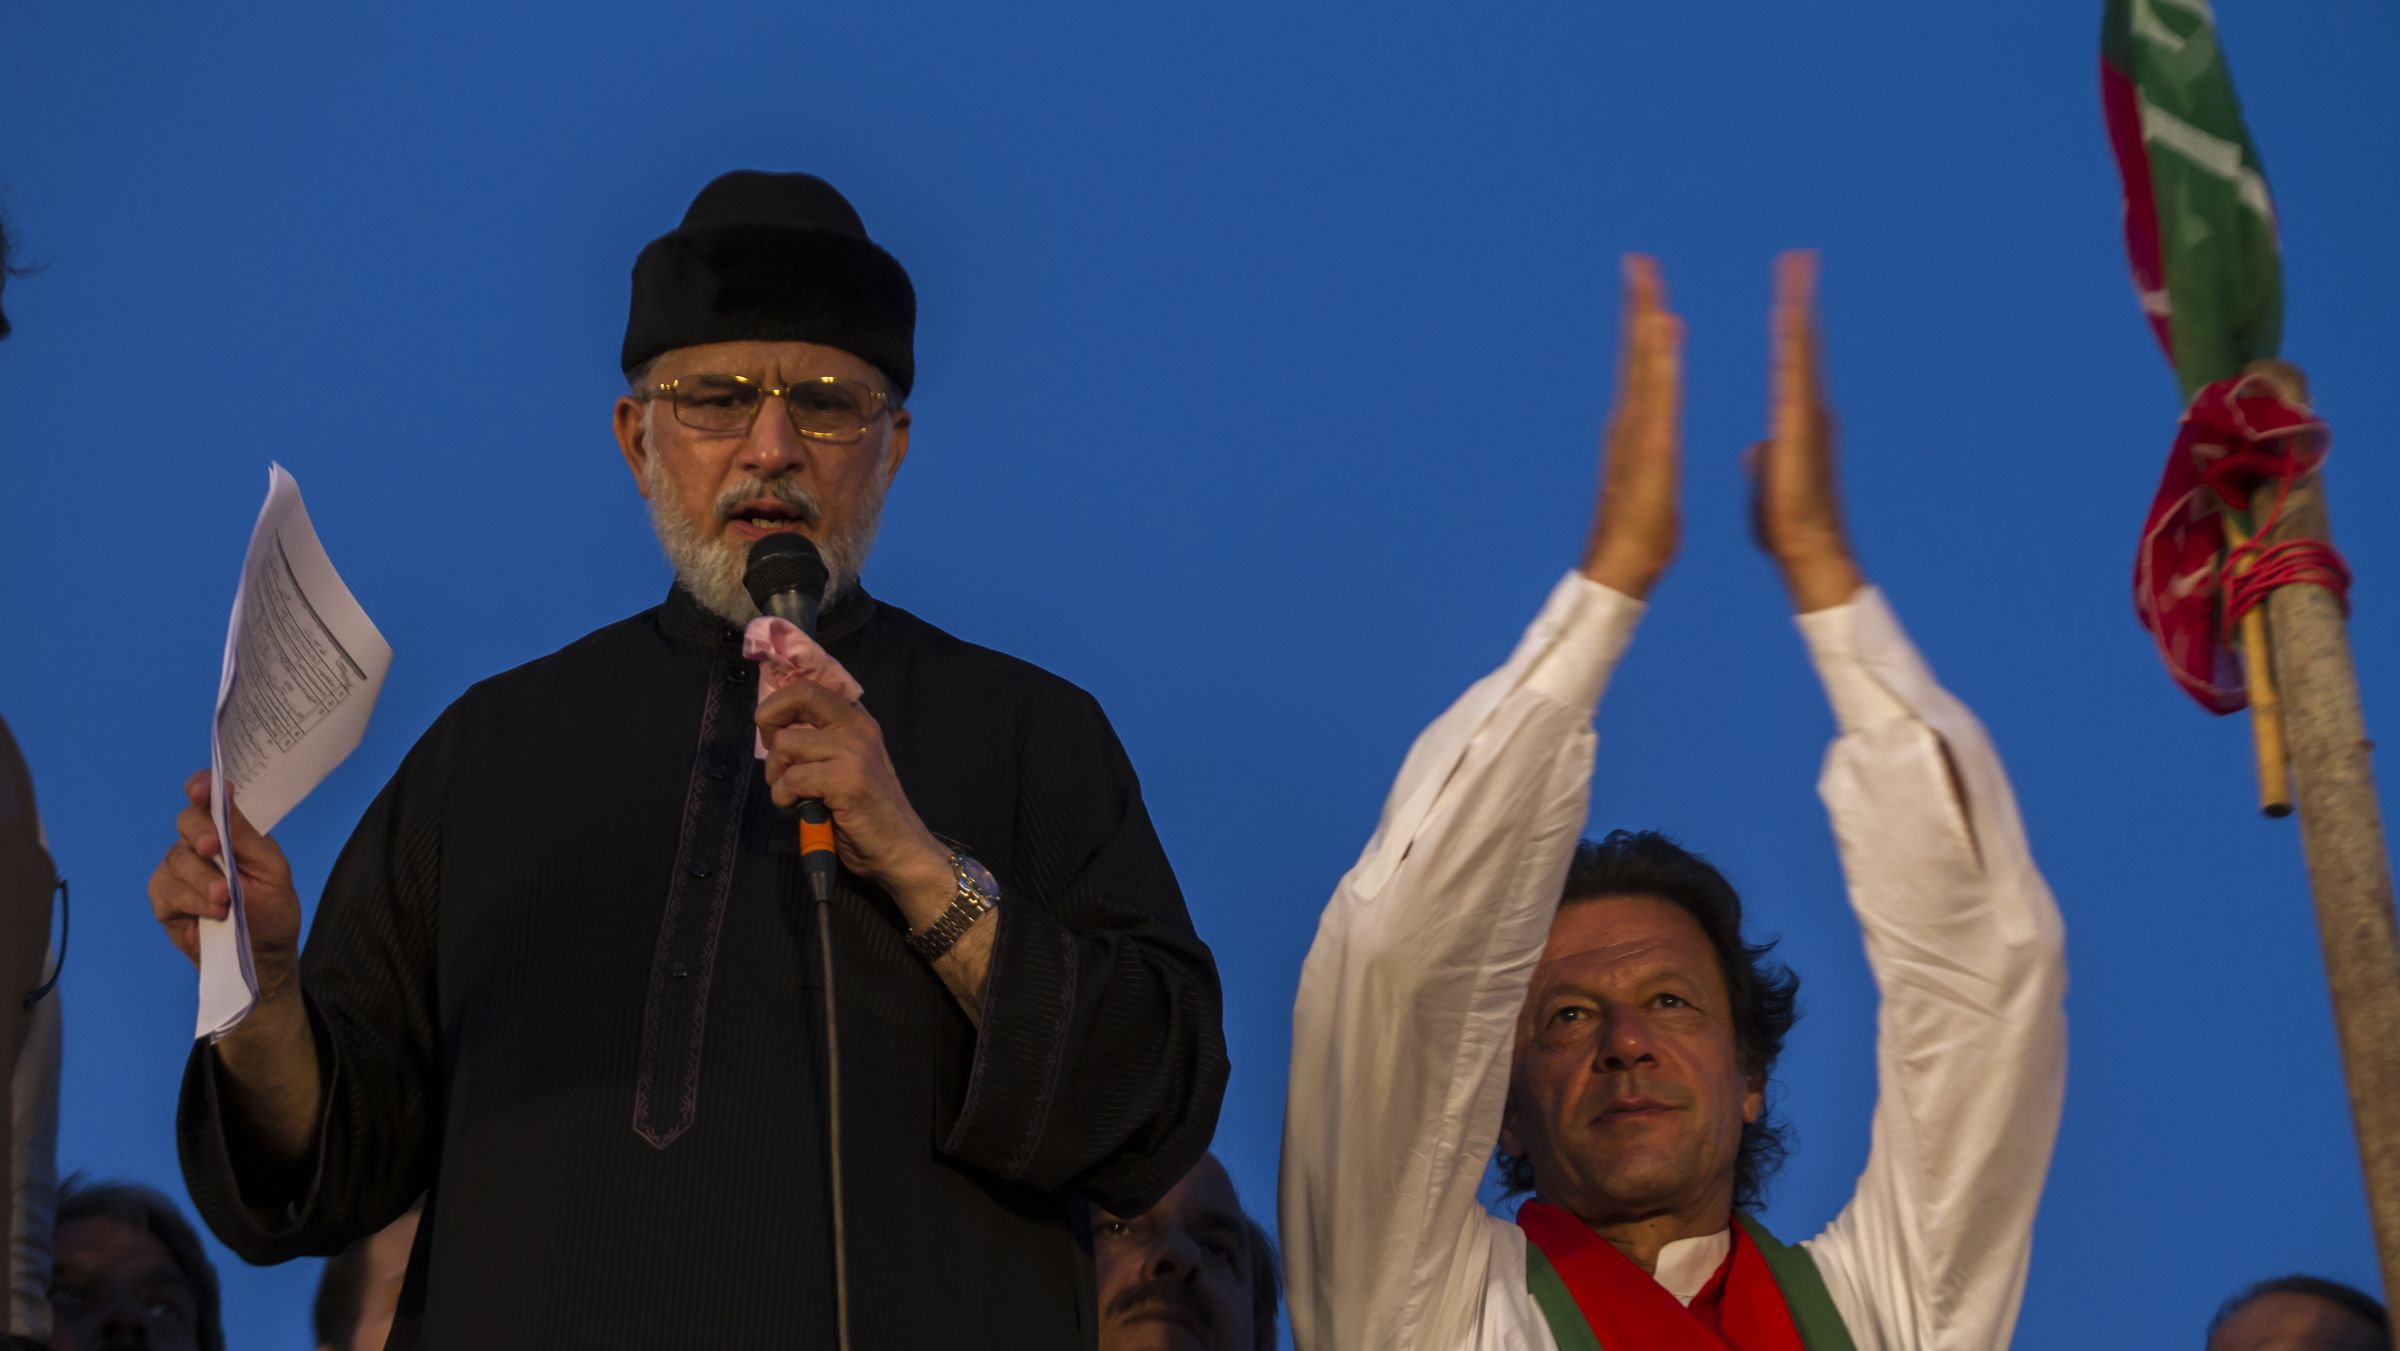 Tahirul Qadri, Sufi cleric and opposition leader of political party Pakistan Awami Tehreek (PAT), addresses supporters while flanked by Imran Khan (R), chairman of the opposition Pakistan Tehreek-e-Insaf (PTI) political party, in Islamabad